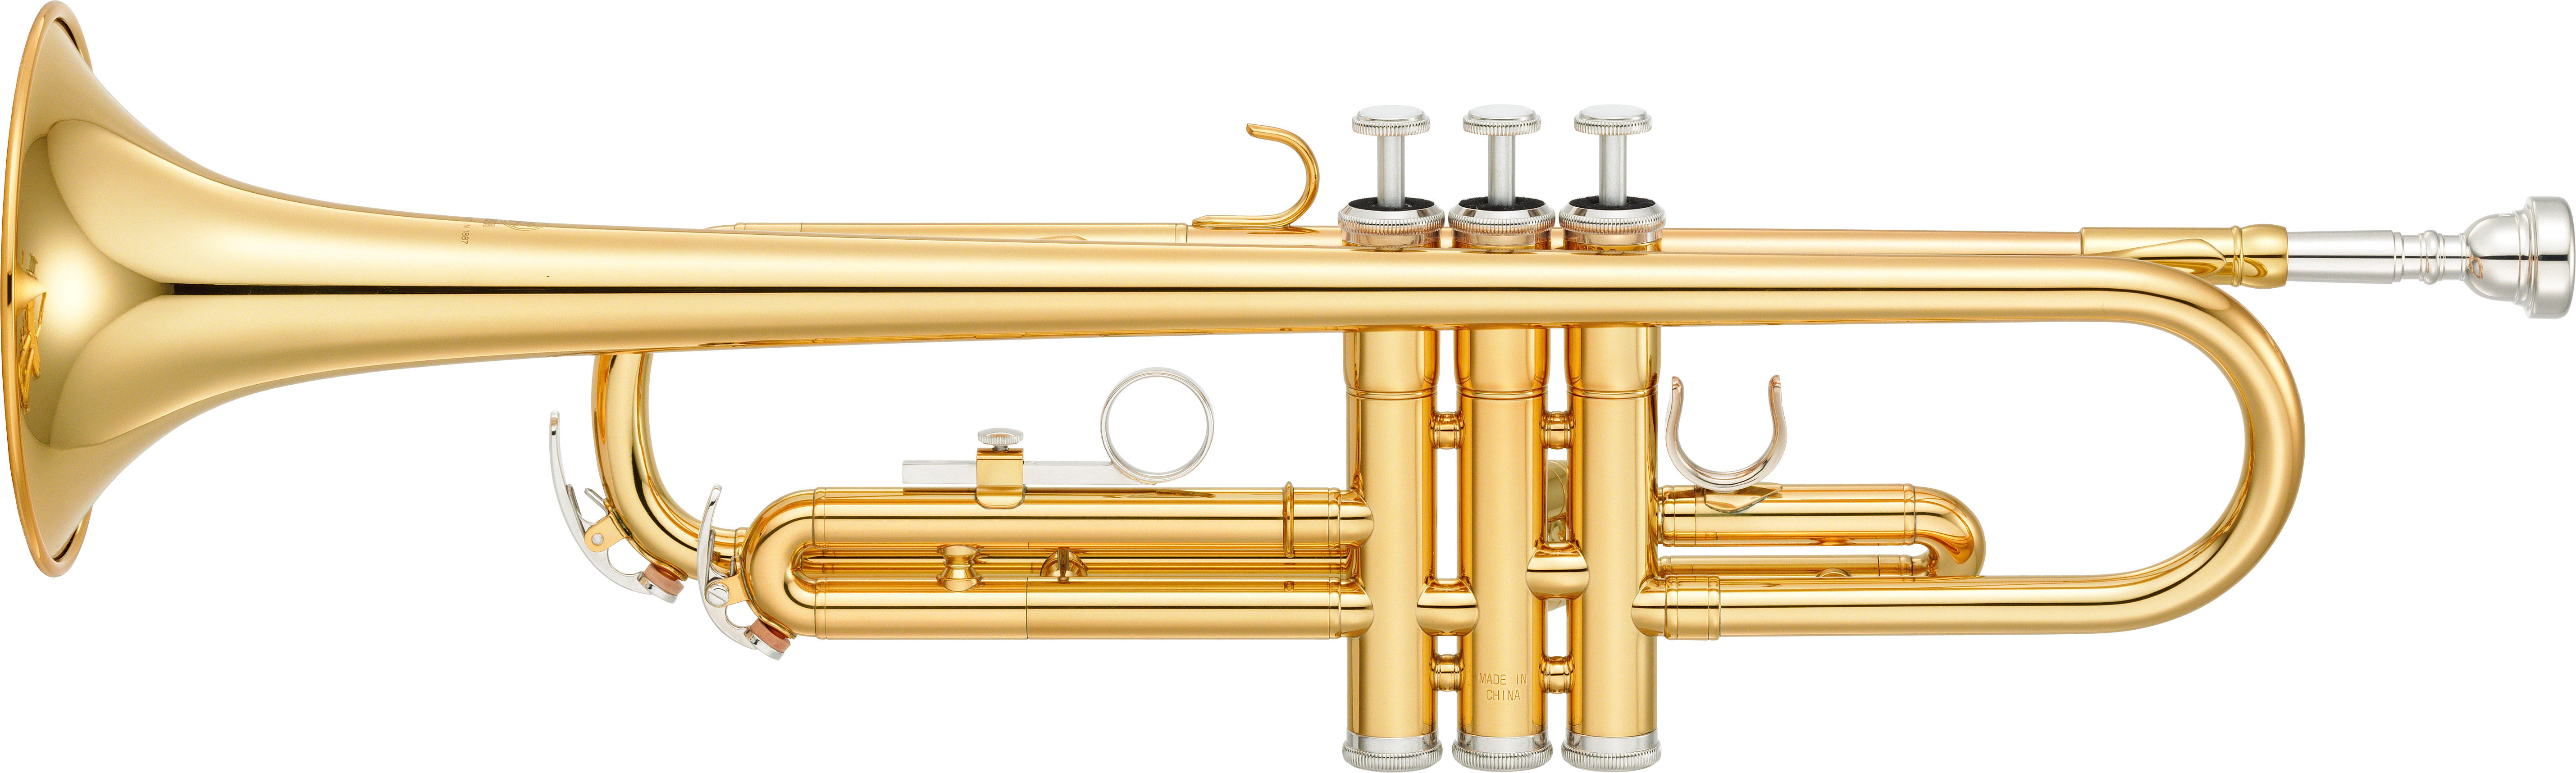 Yamaha ytr 2330 bb trumpet lightweight student model in for Yamaha student trumpets